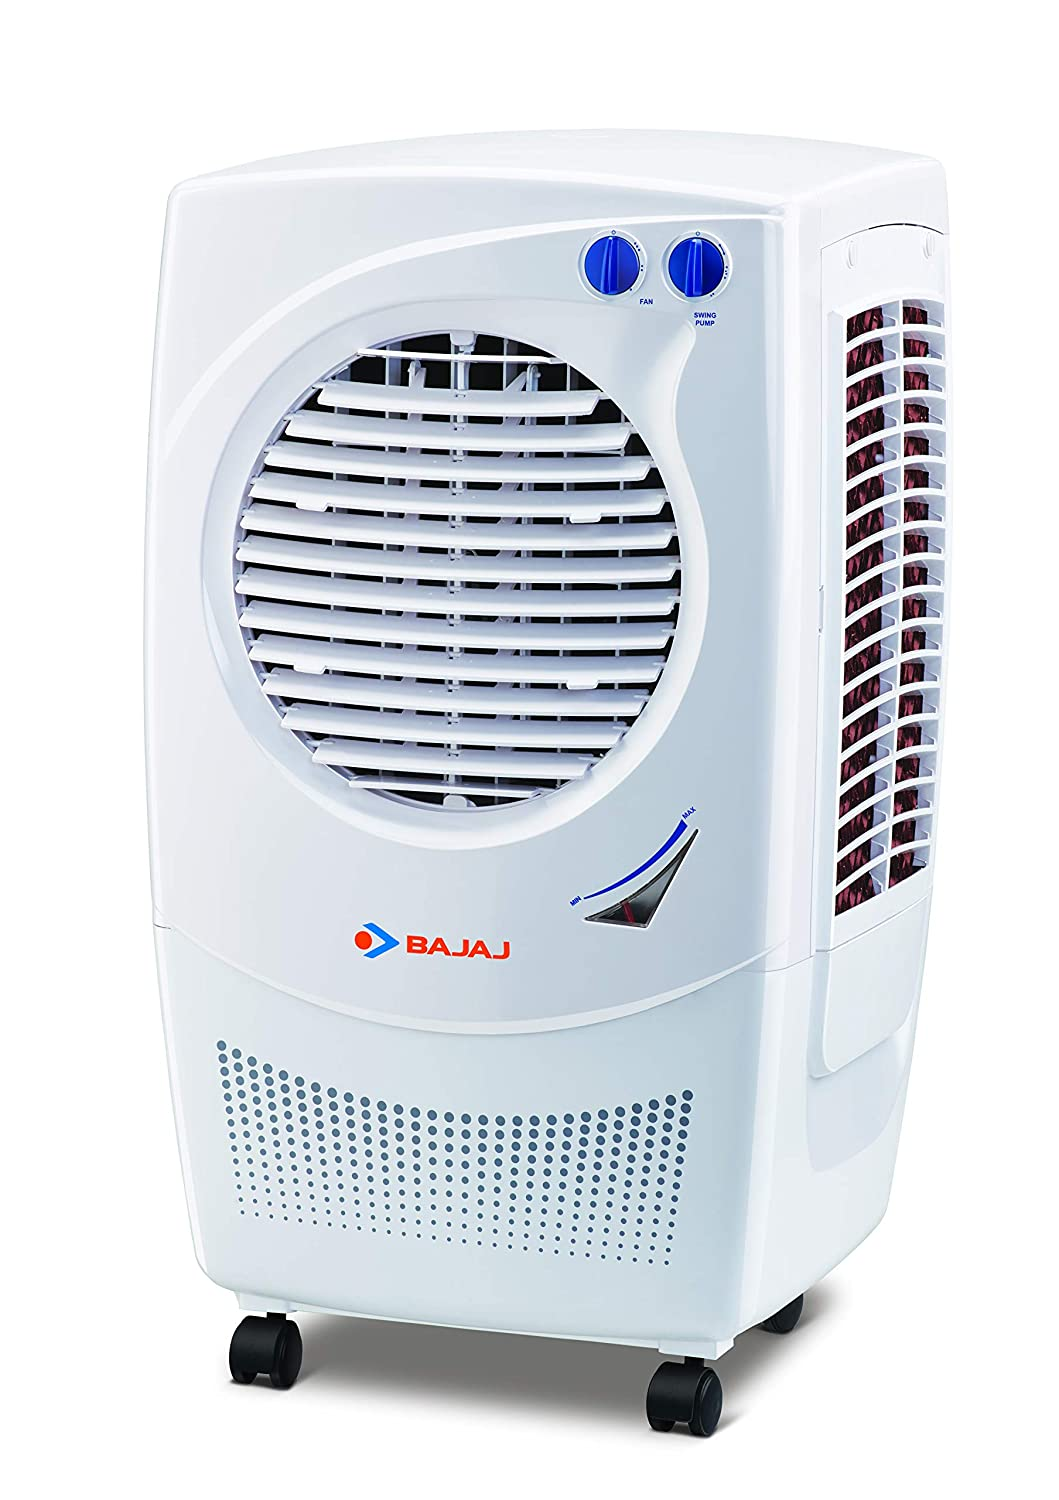 bajaj-platini-best-air-cooler-india-pic